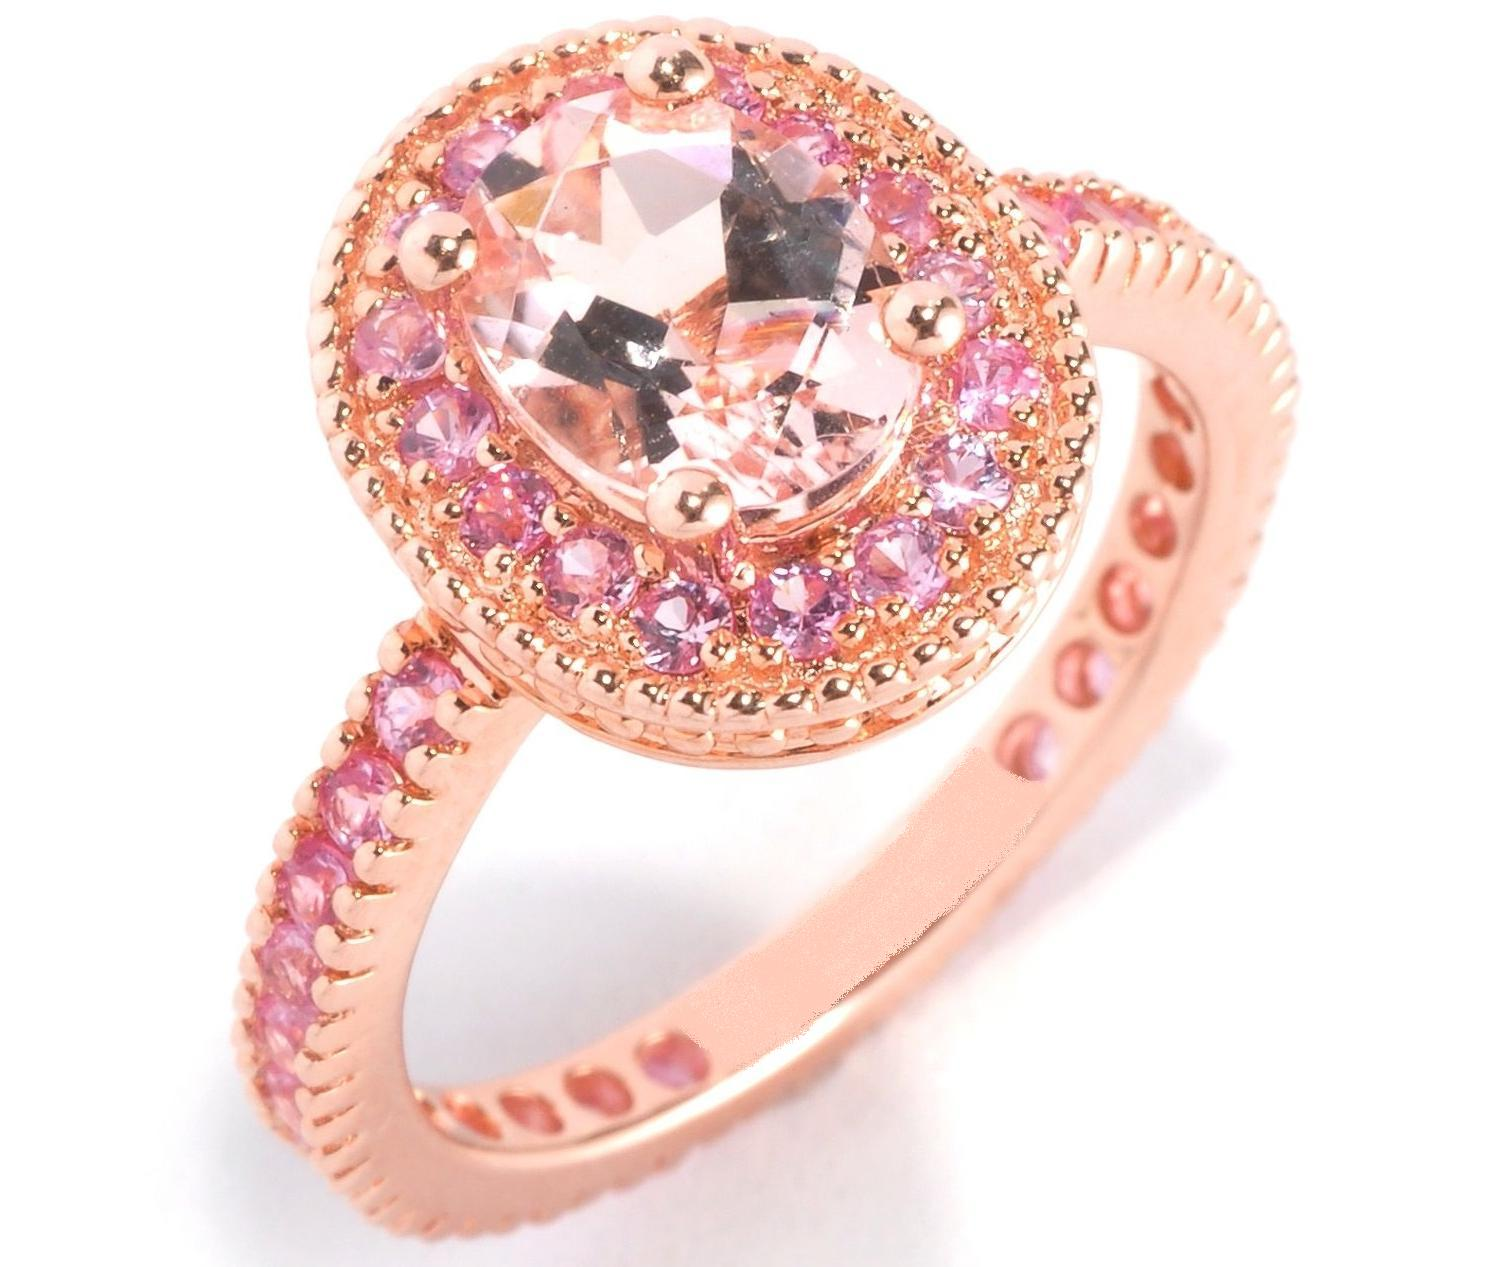 Morganite - European Engagement Rings from MDC Diamonds NYC